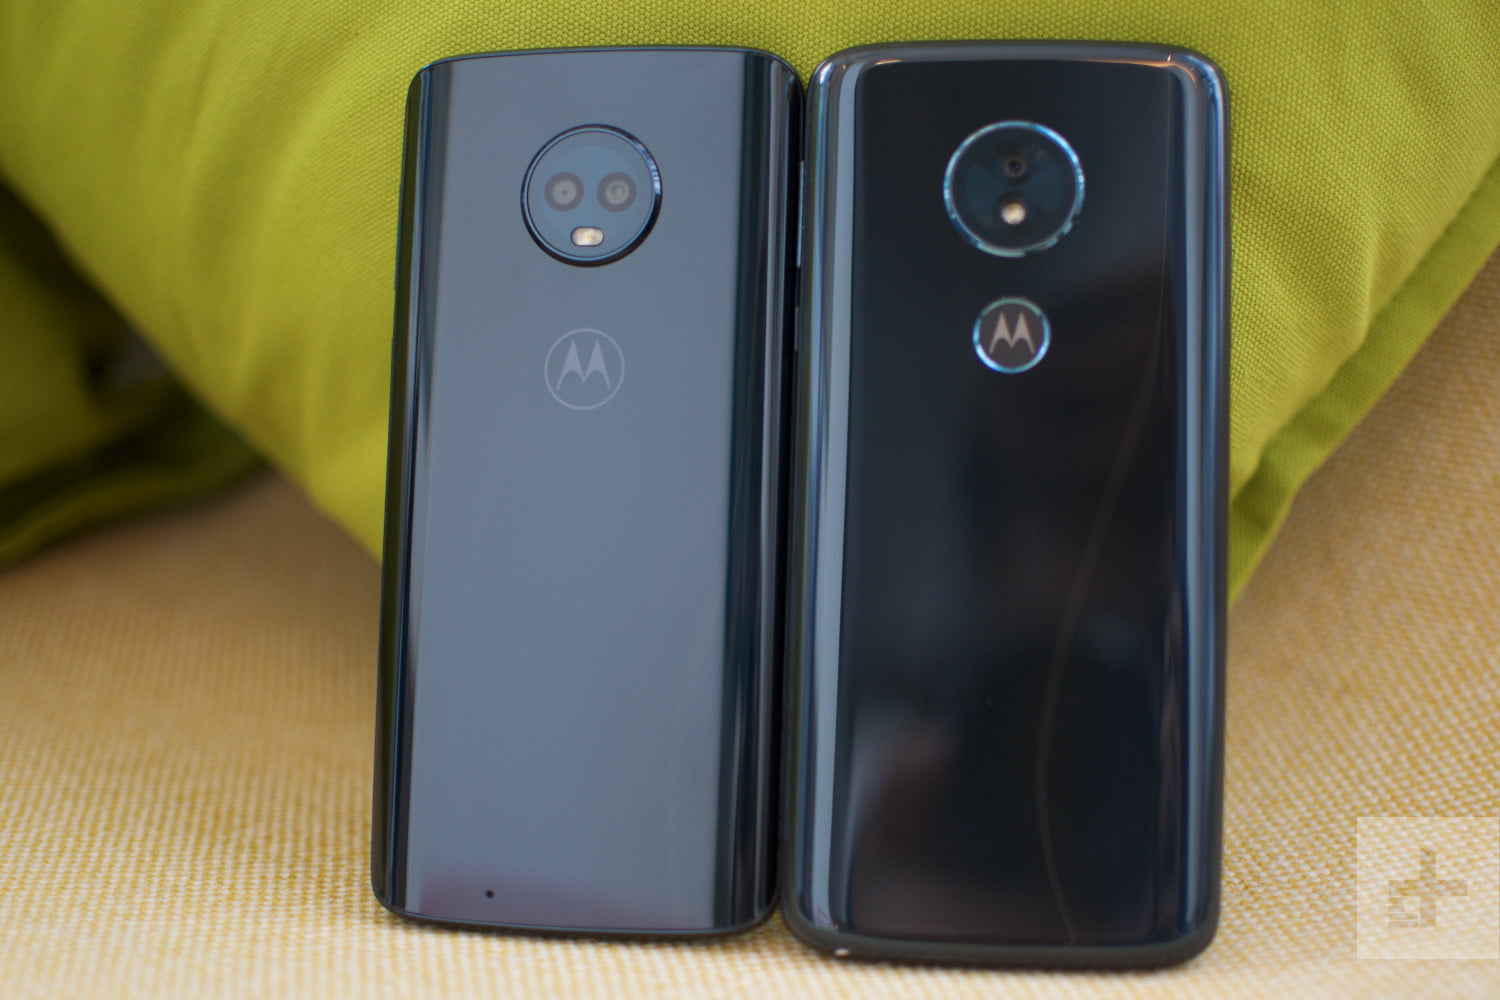 Motorola Moto G6 Vs Moto G6 Play Is The G6 Worth The Extra Cash Digital Trends